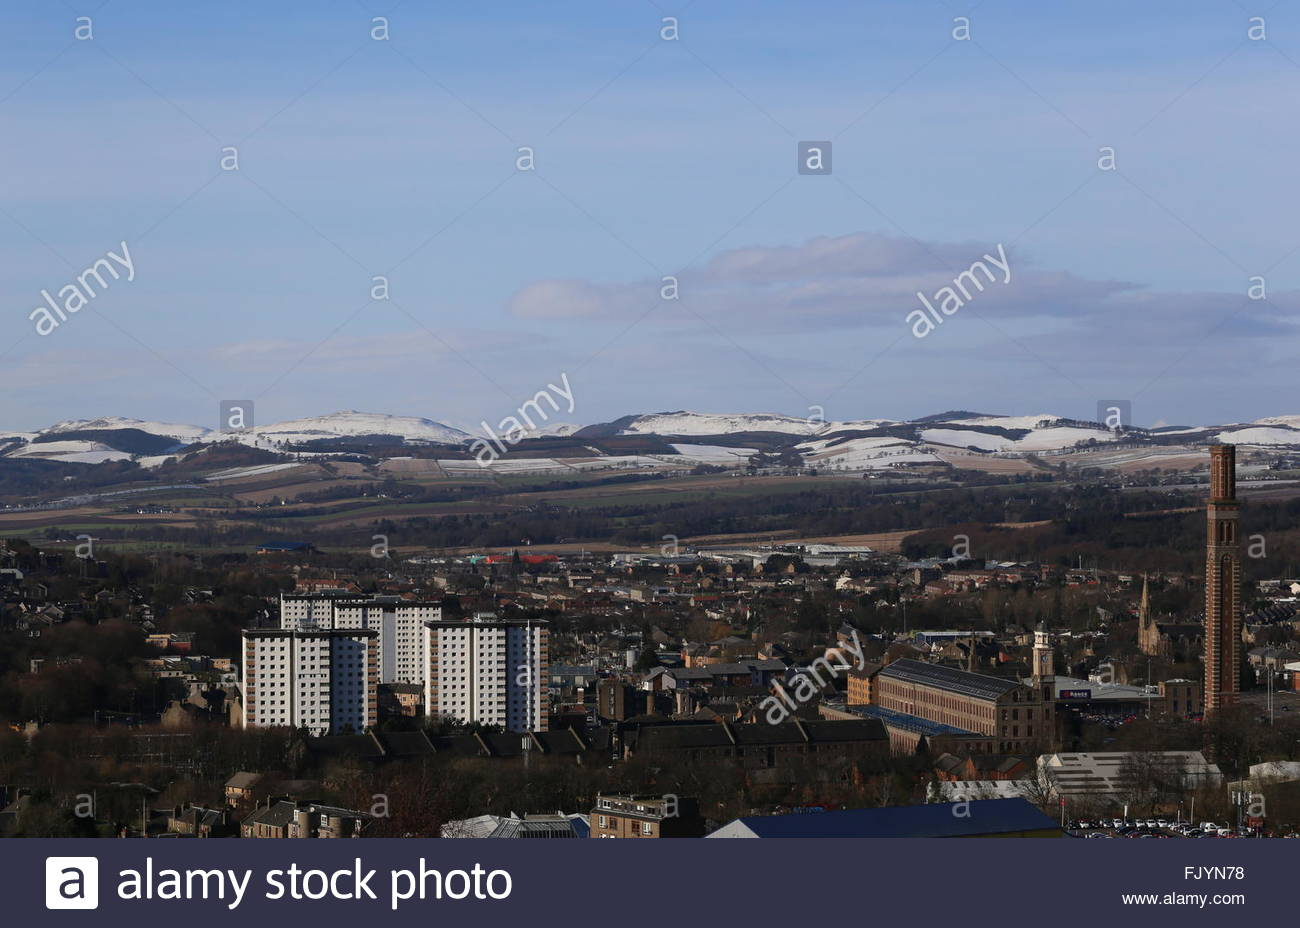 Cox's stack chimney Lochee and distant peaks viewed from Dundee Law Scotland  February 2016 - Stock Image